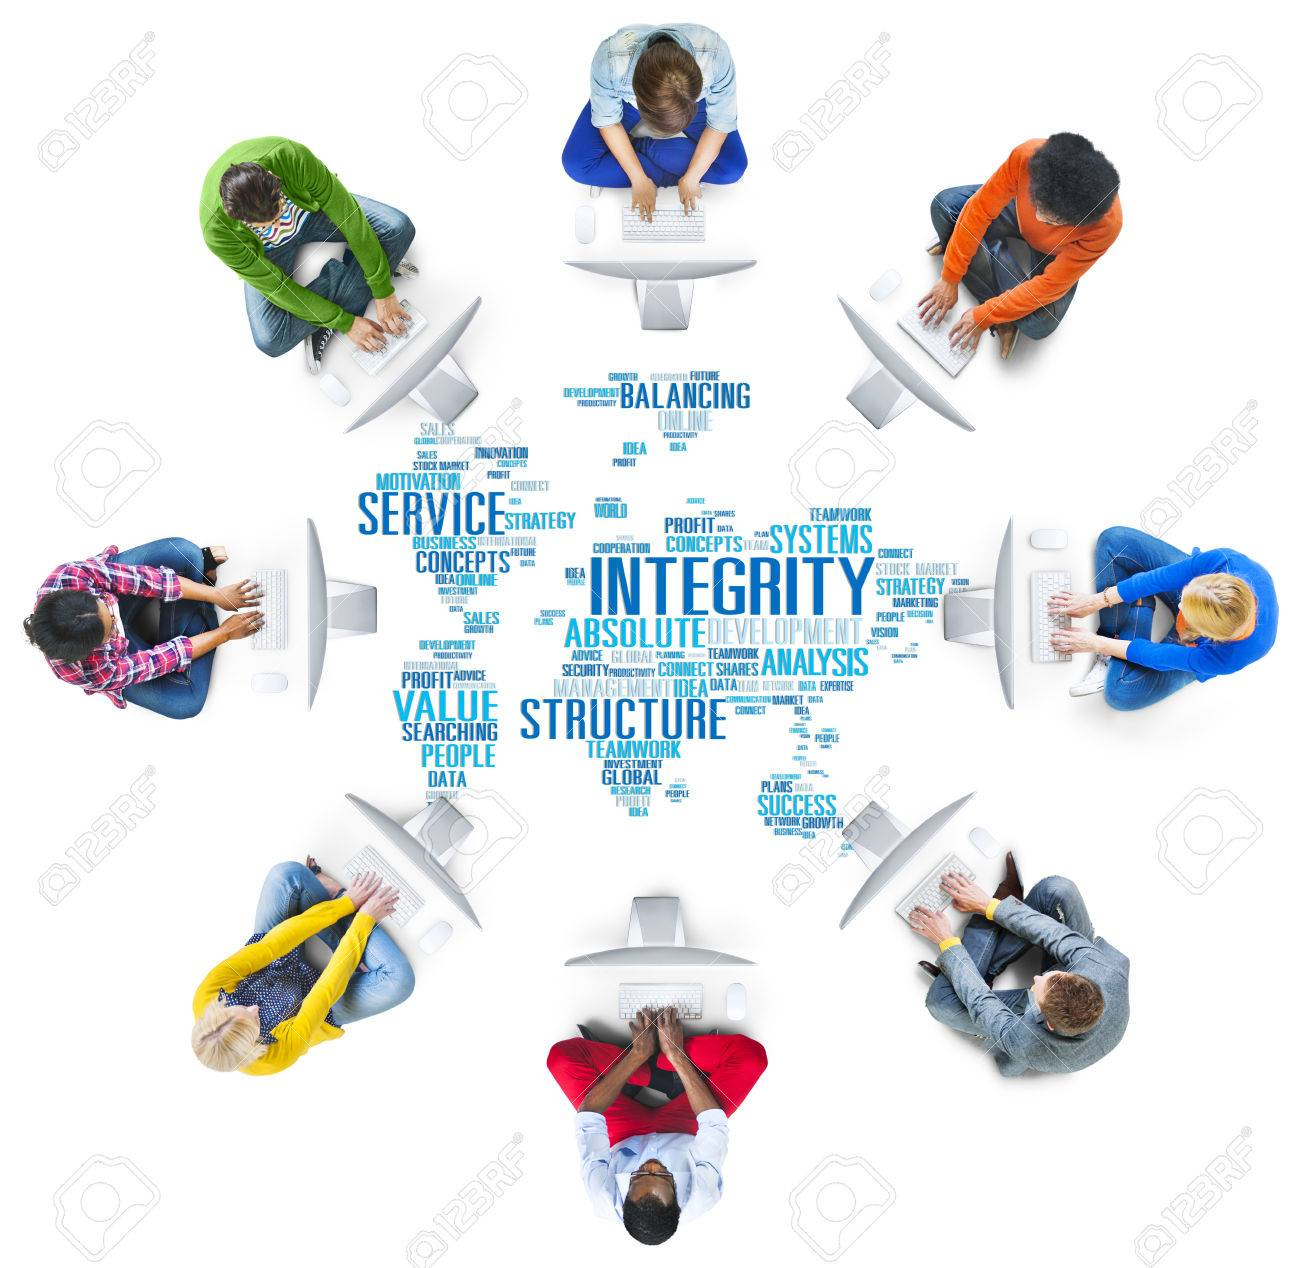 Integrity Honesty Sincerity Trust Reliability Concept Stock Photo